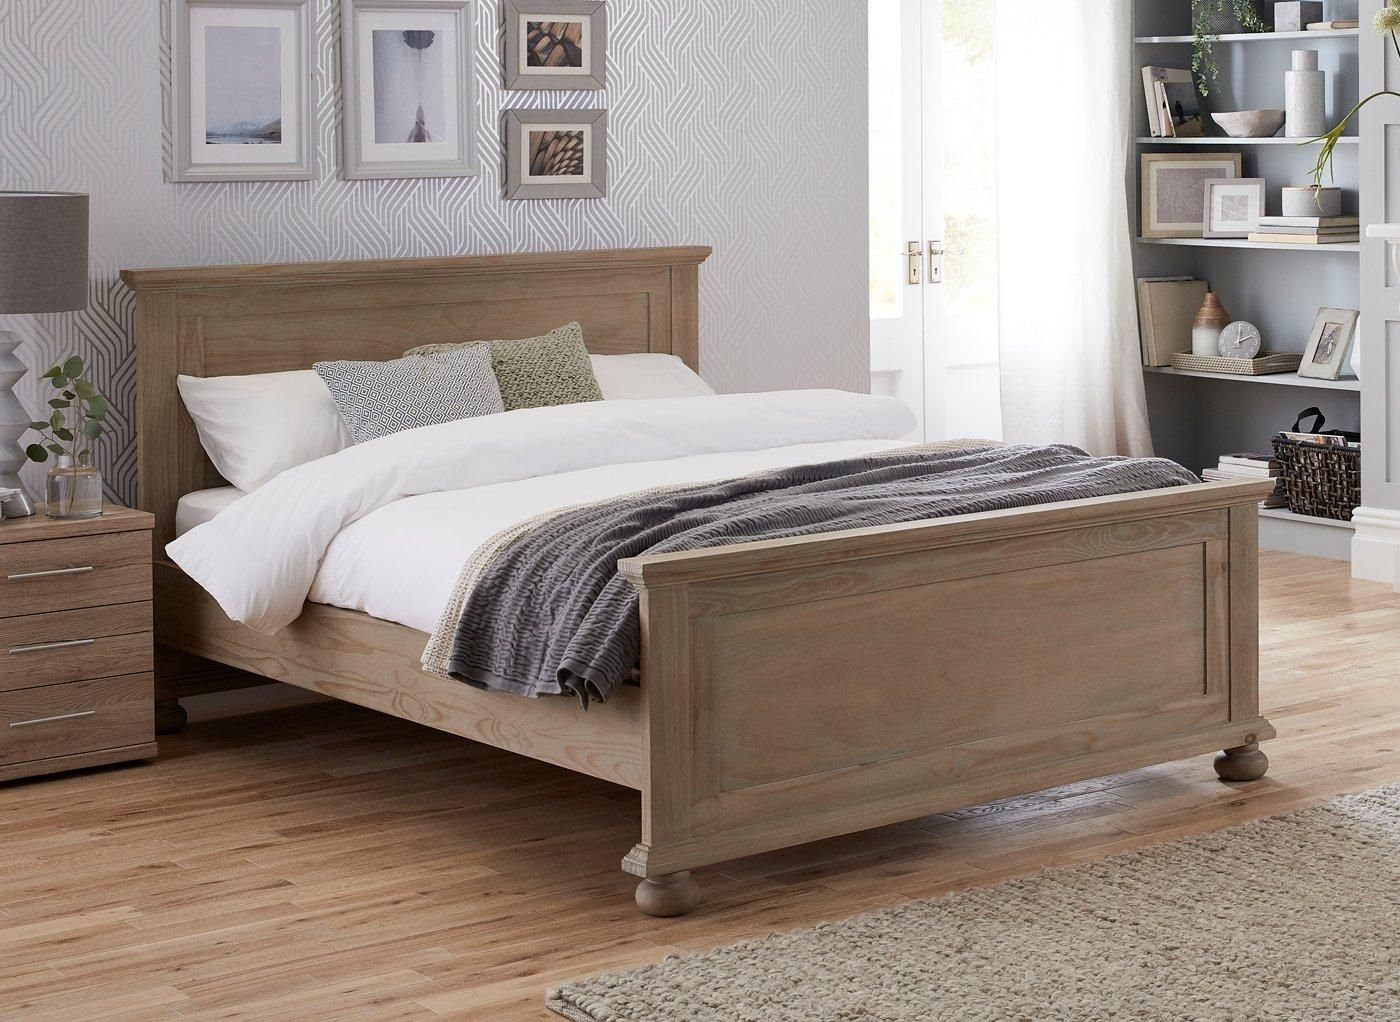 Jameson Natural Pine Wooden Bed Frame 4 6 Double Double Bed